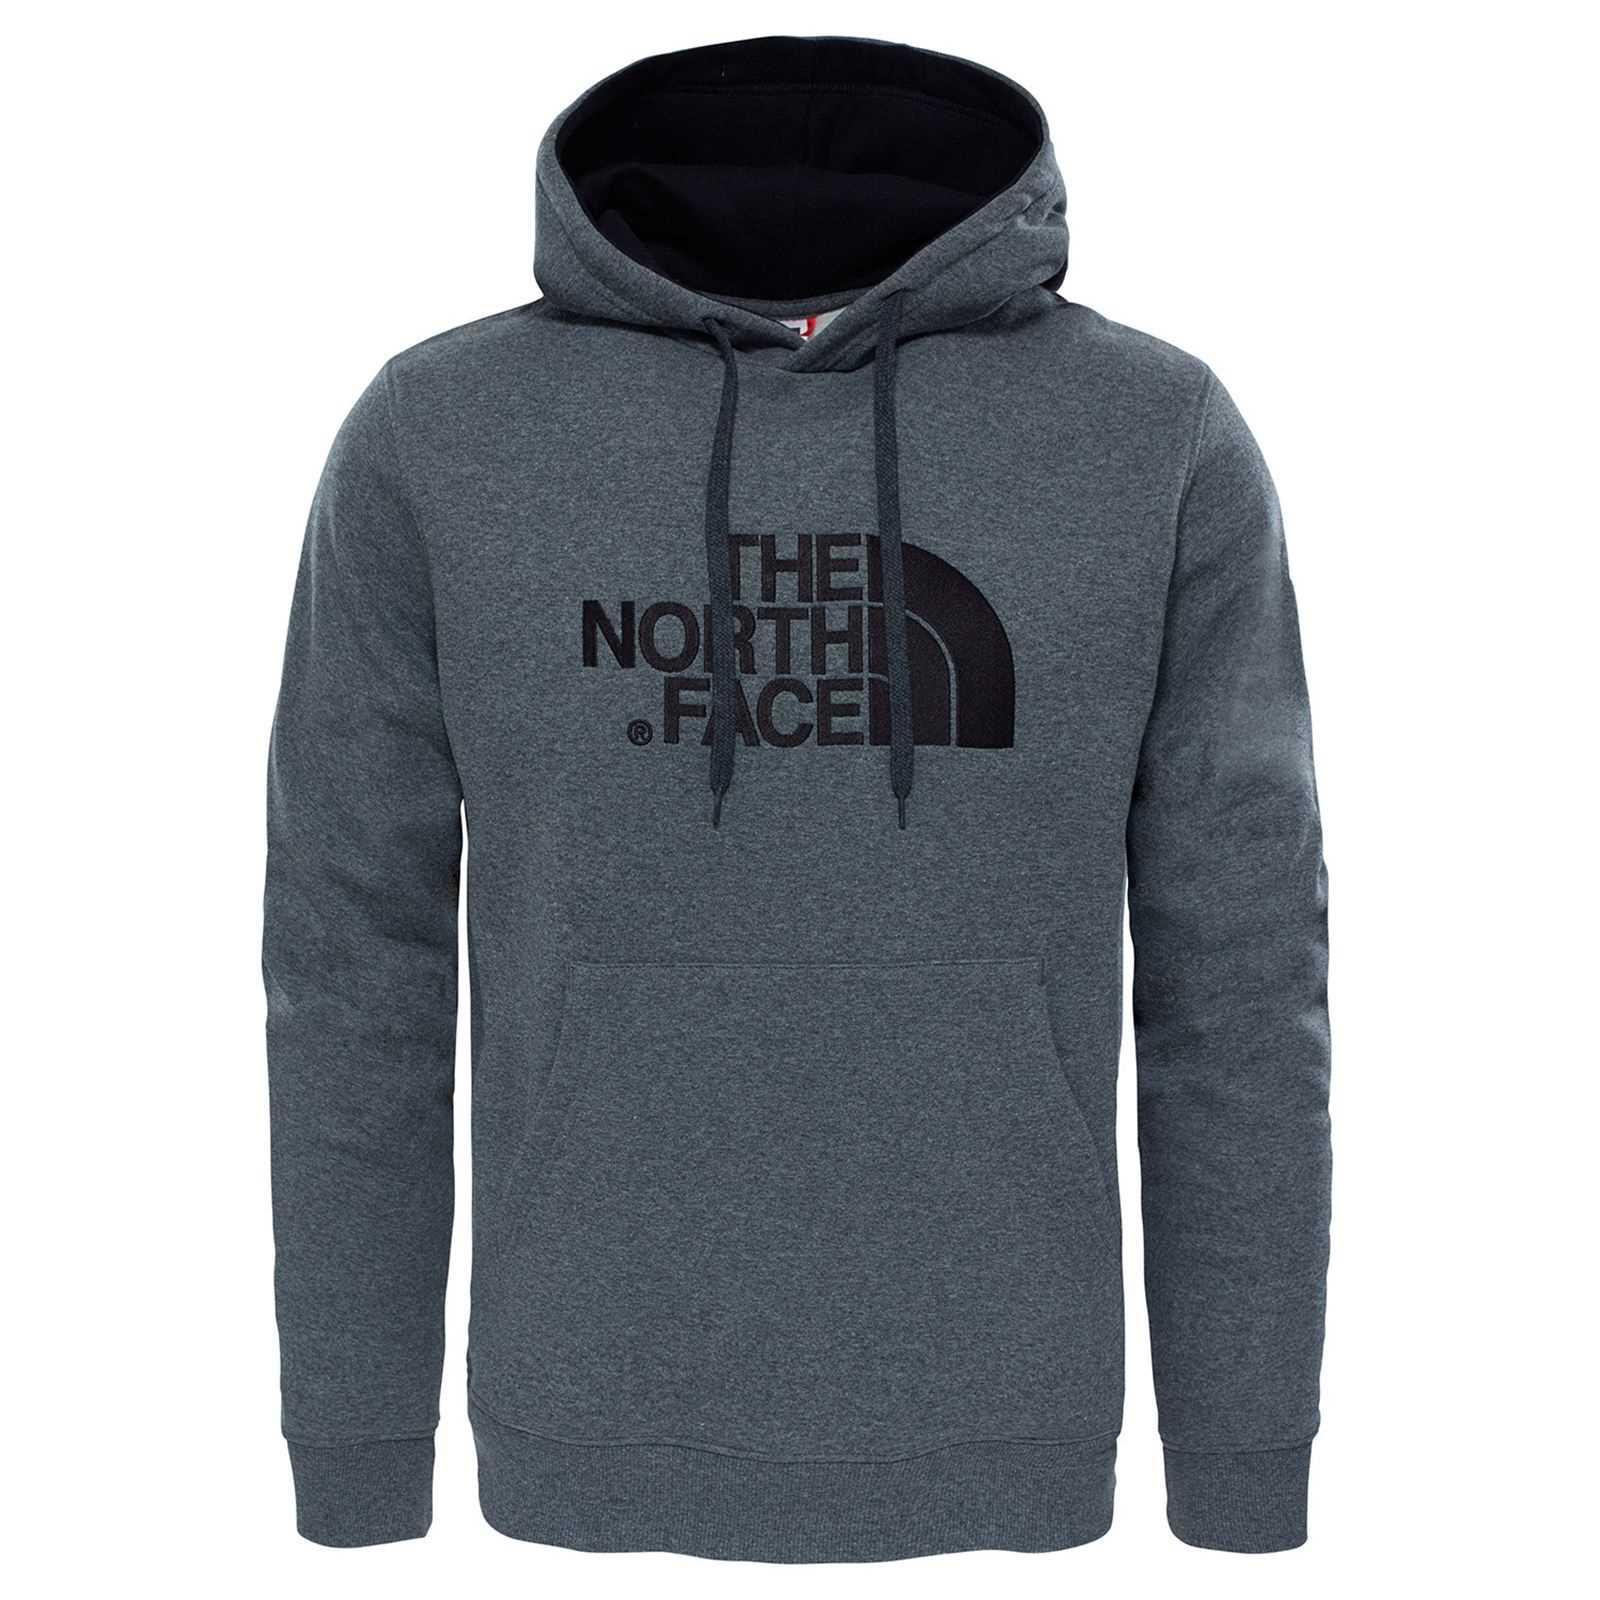 a Gris Pullover Drew North Peak Capuche The Homme Face HoodSweat V AjL34q5R